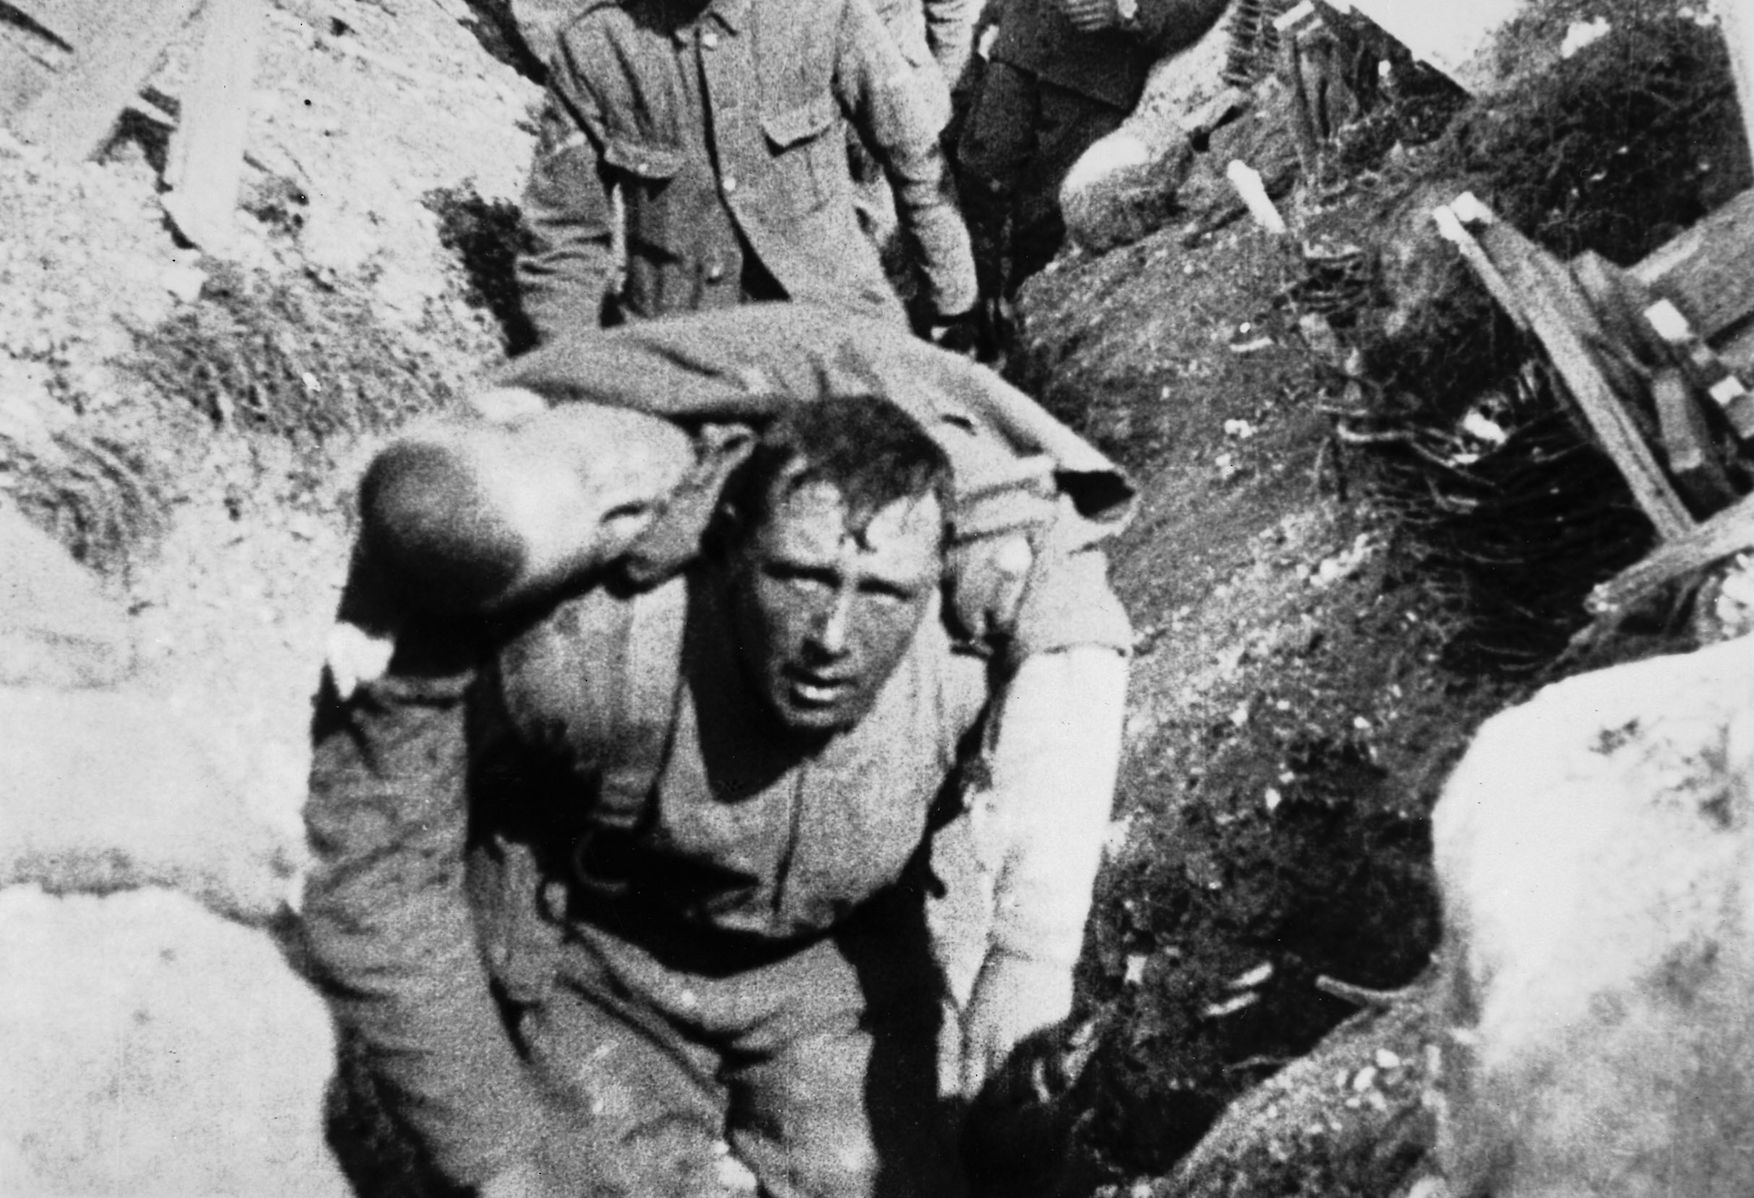 Harrowing Details From Battle Of The Somme Revealed For First Time In New